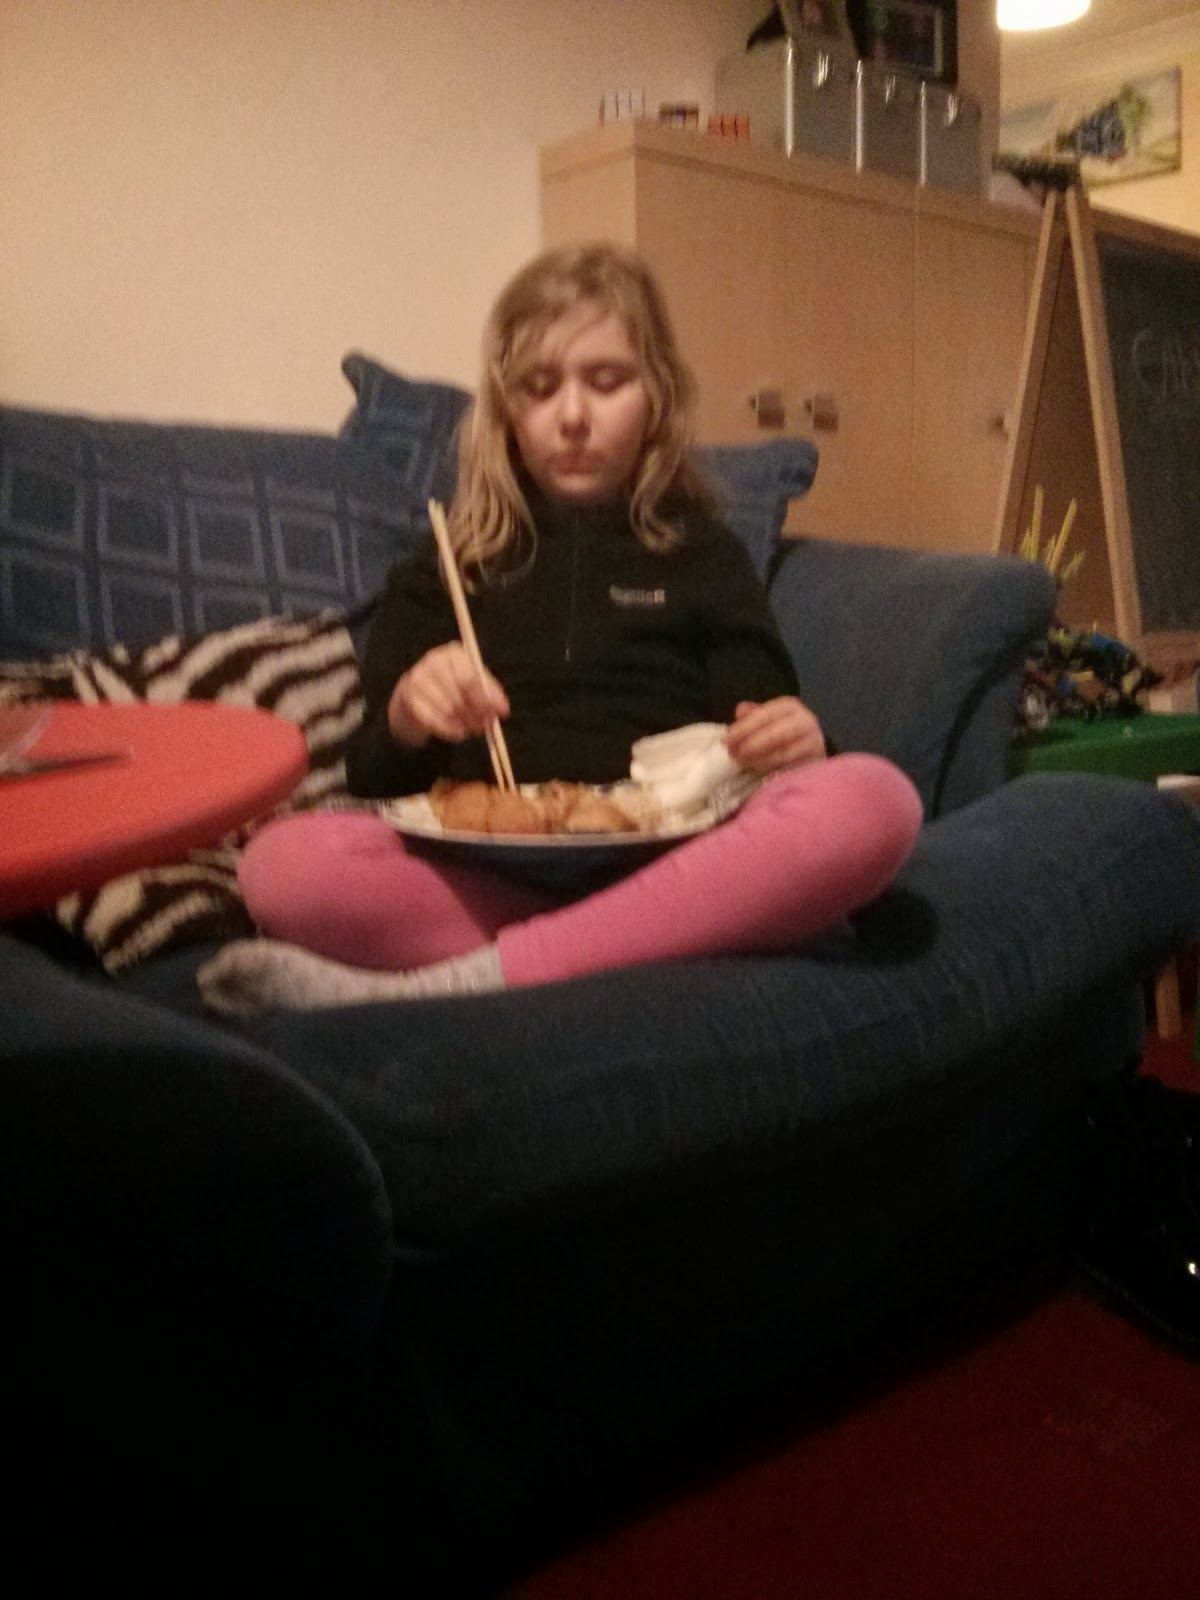 Top Ender eating her Chinese with Chopsticks